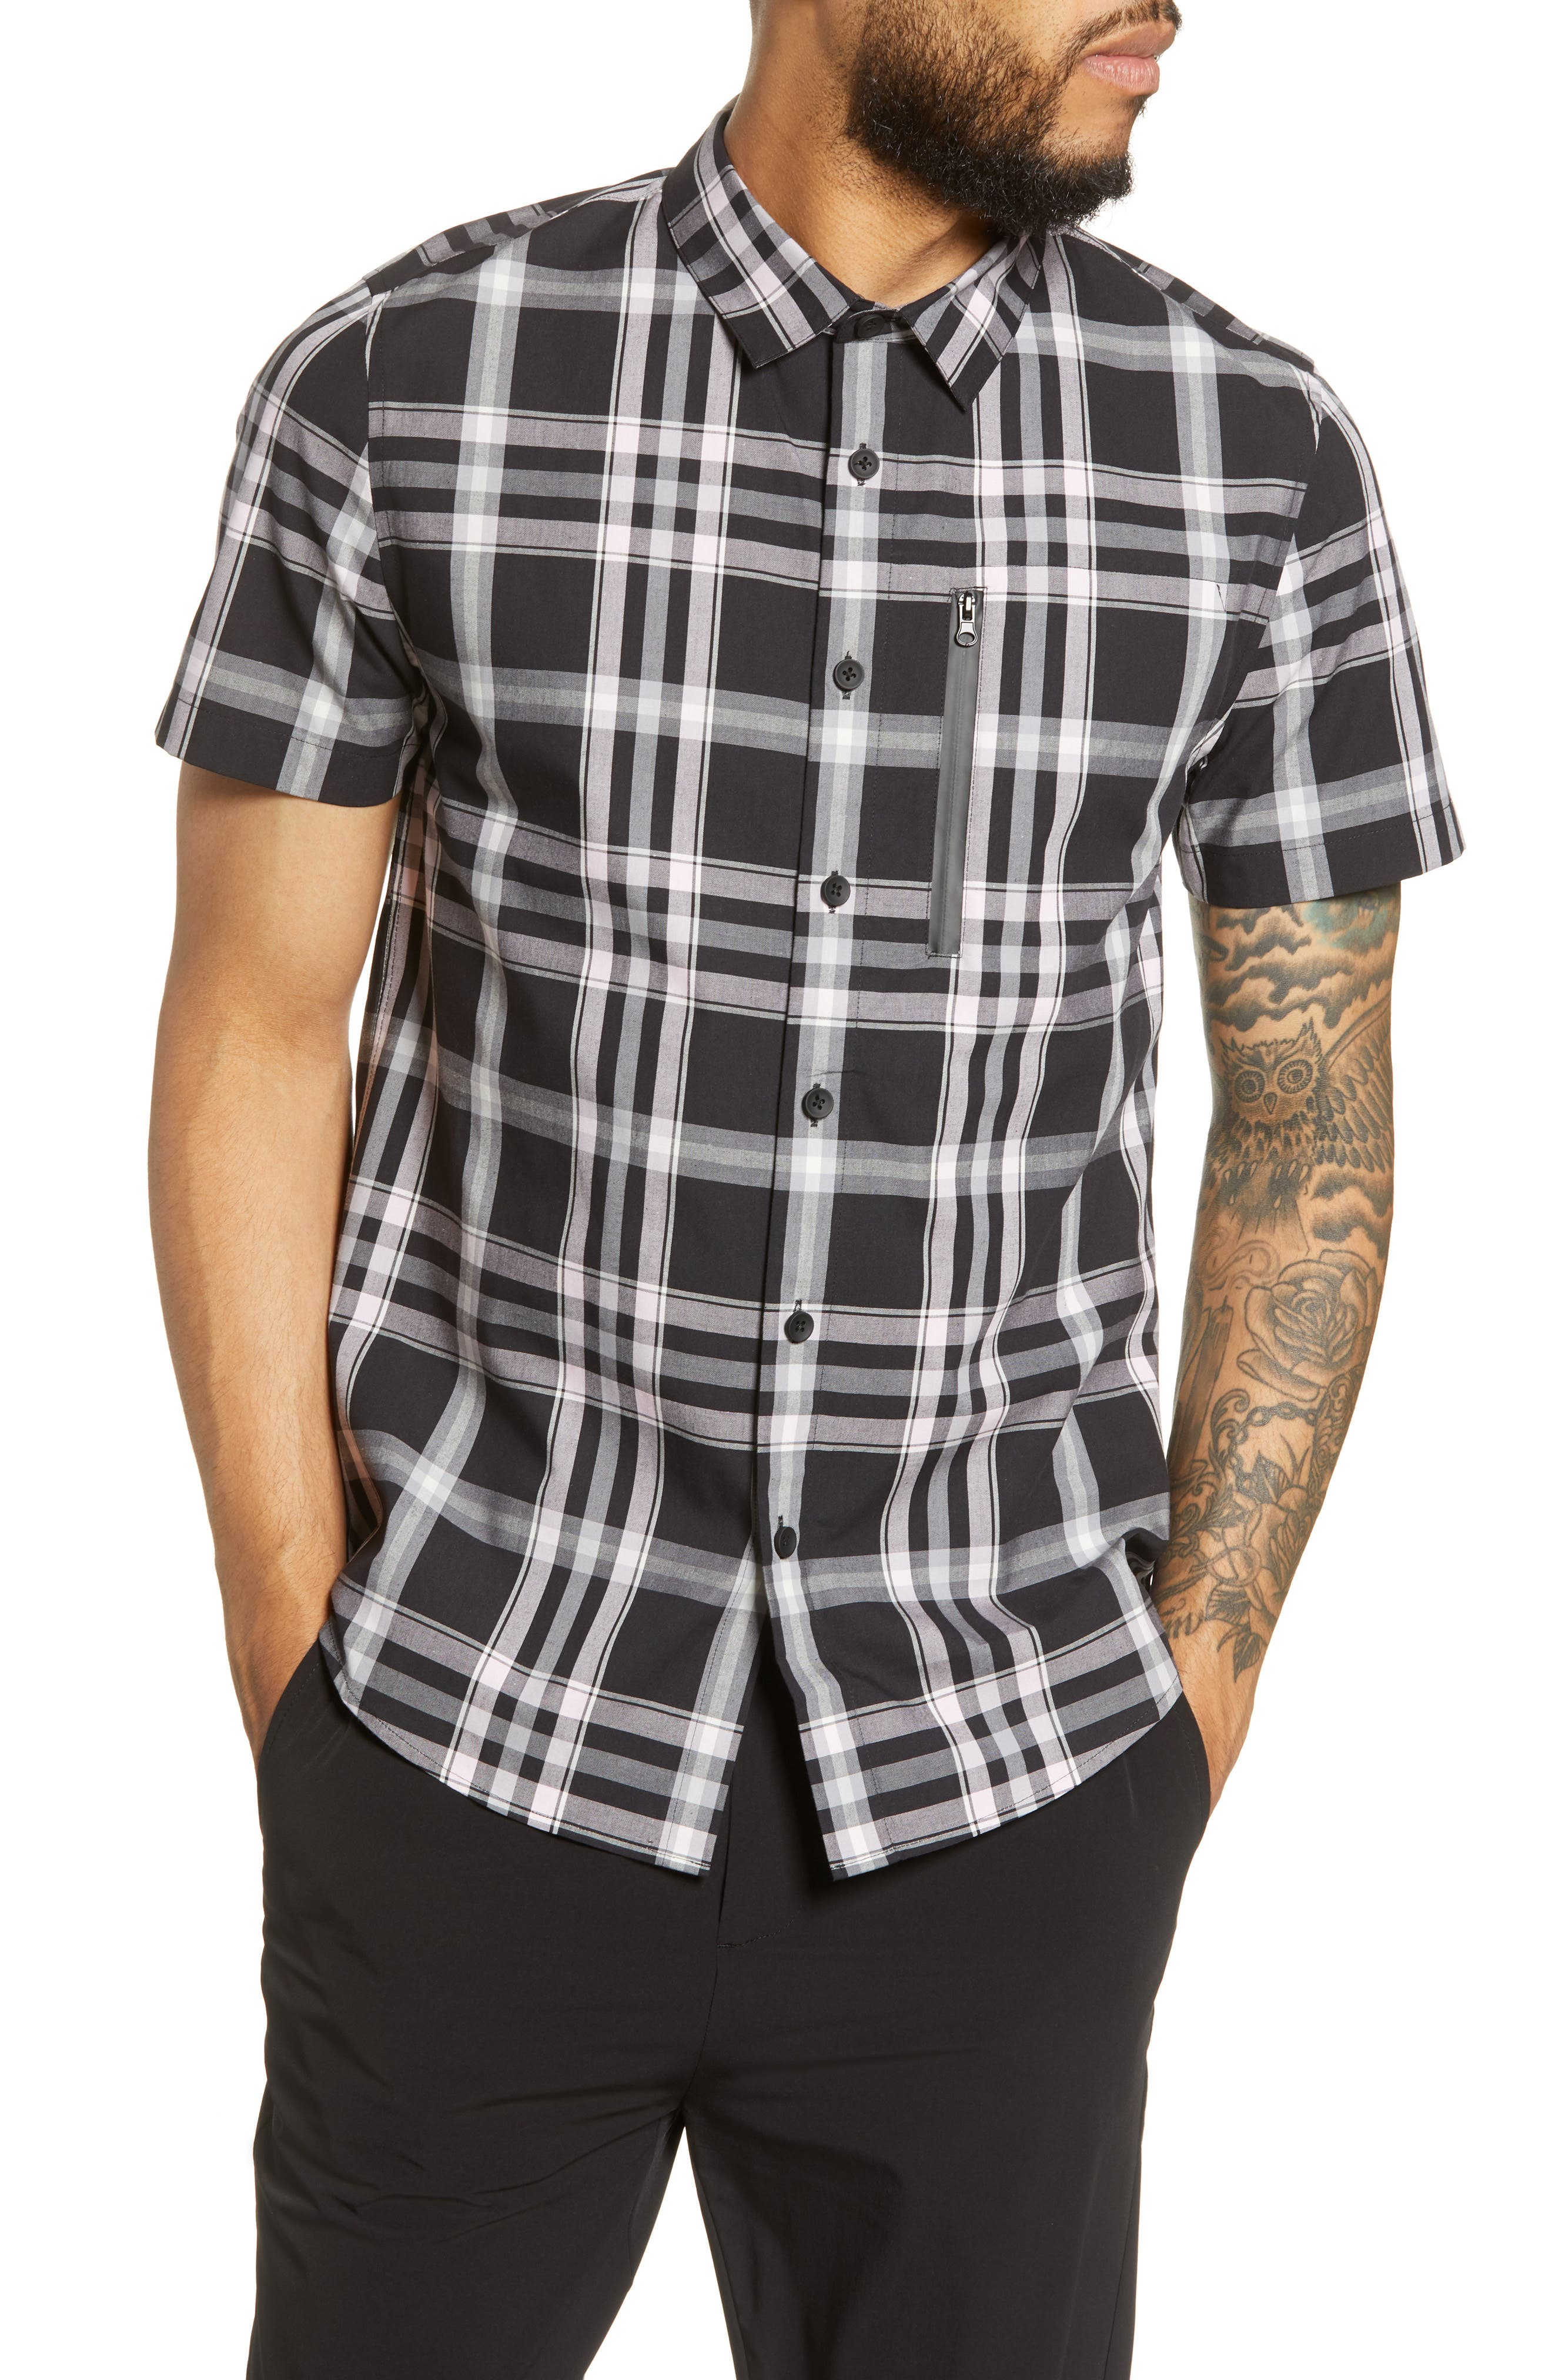 River Stone Slim Fit Plaid Short Sleeve Button-Up Sport Shirt, Black